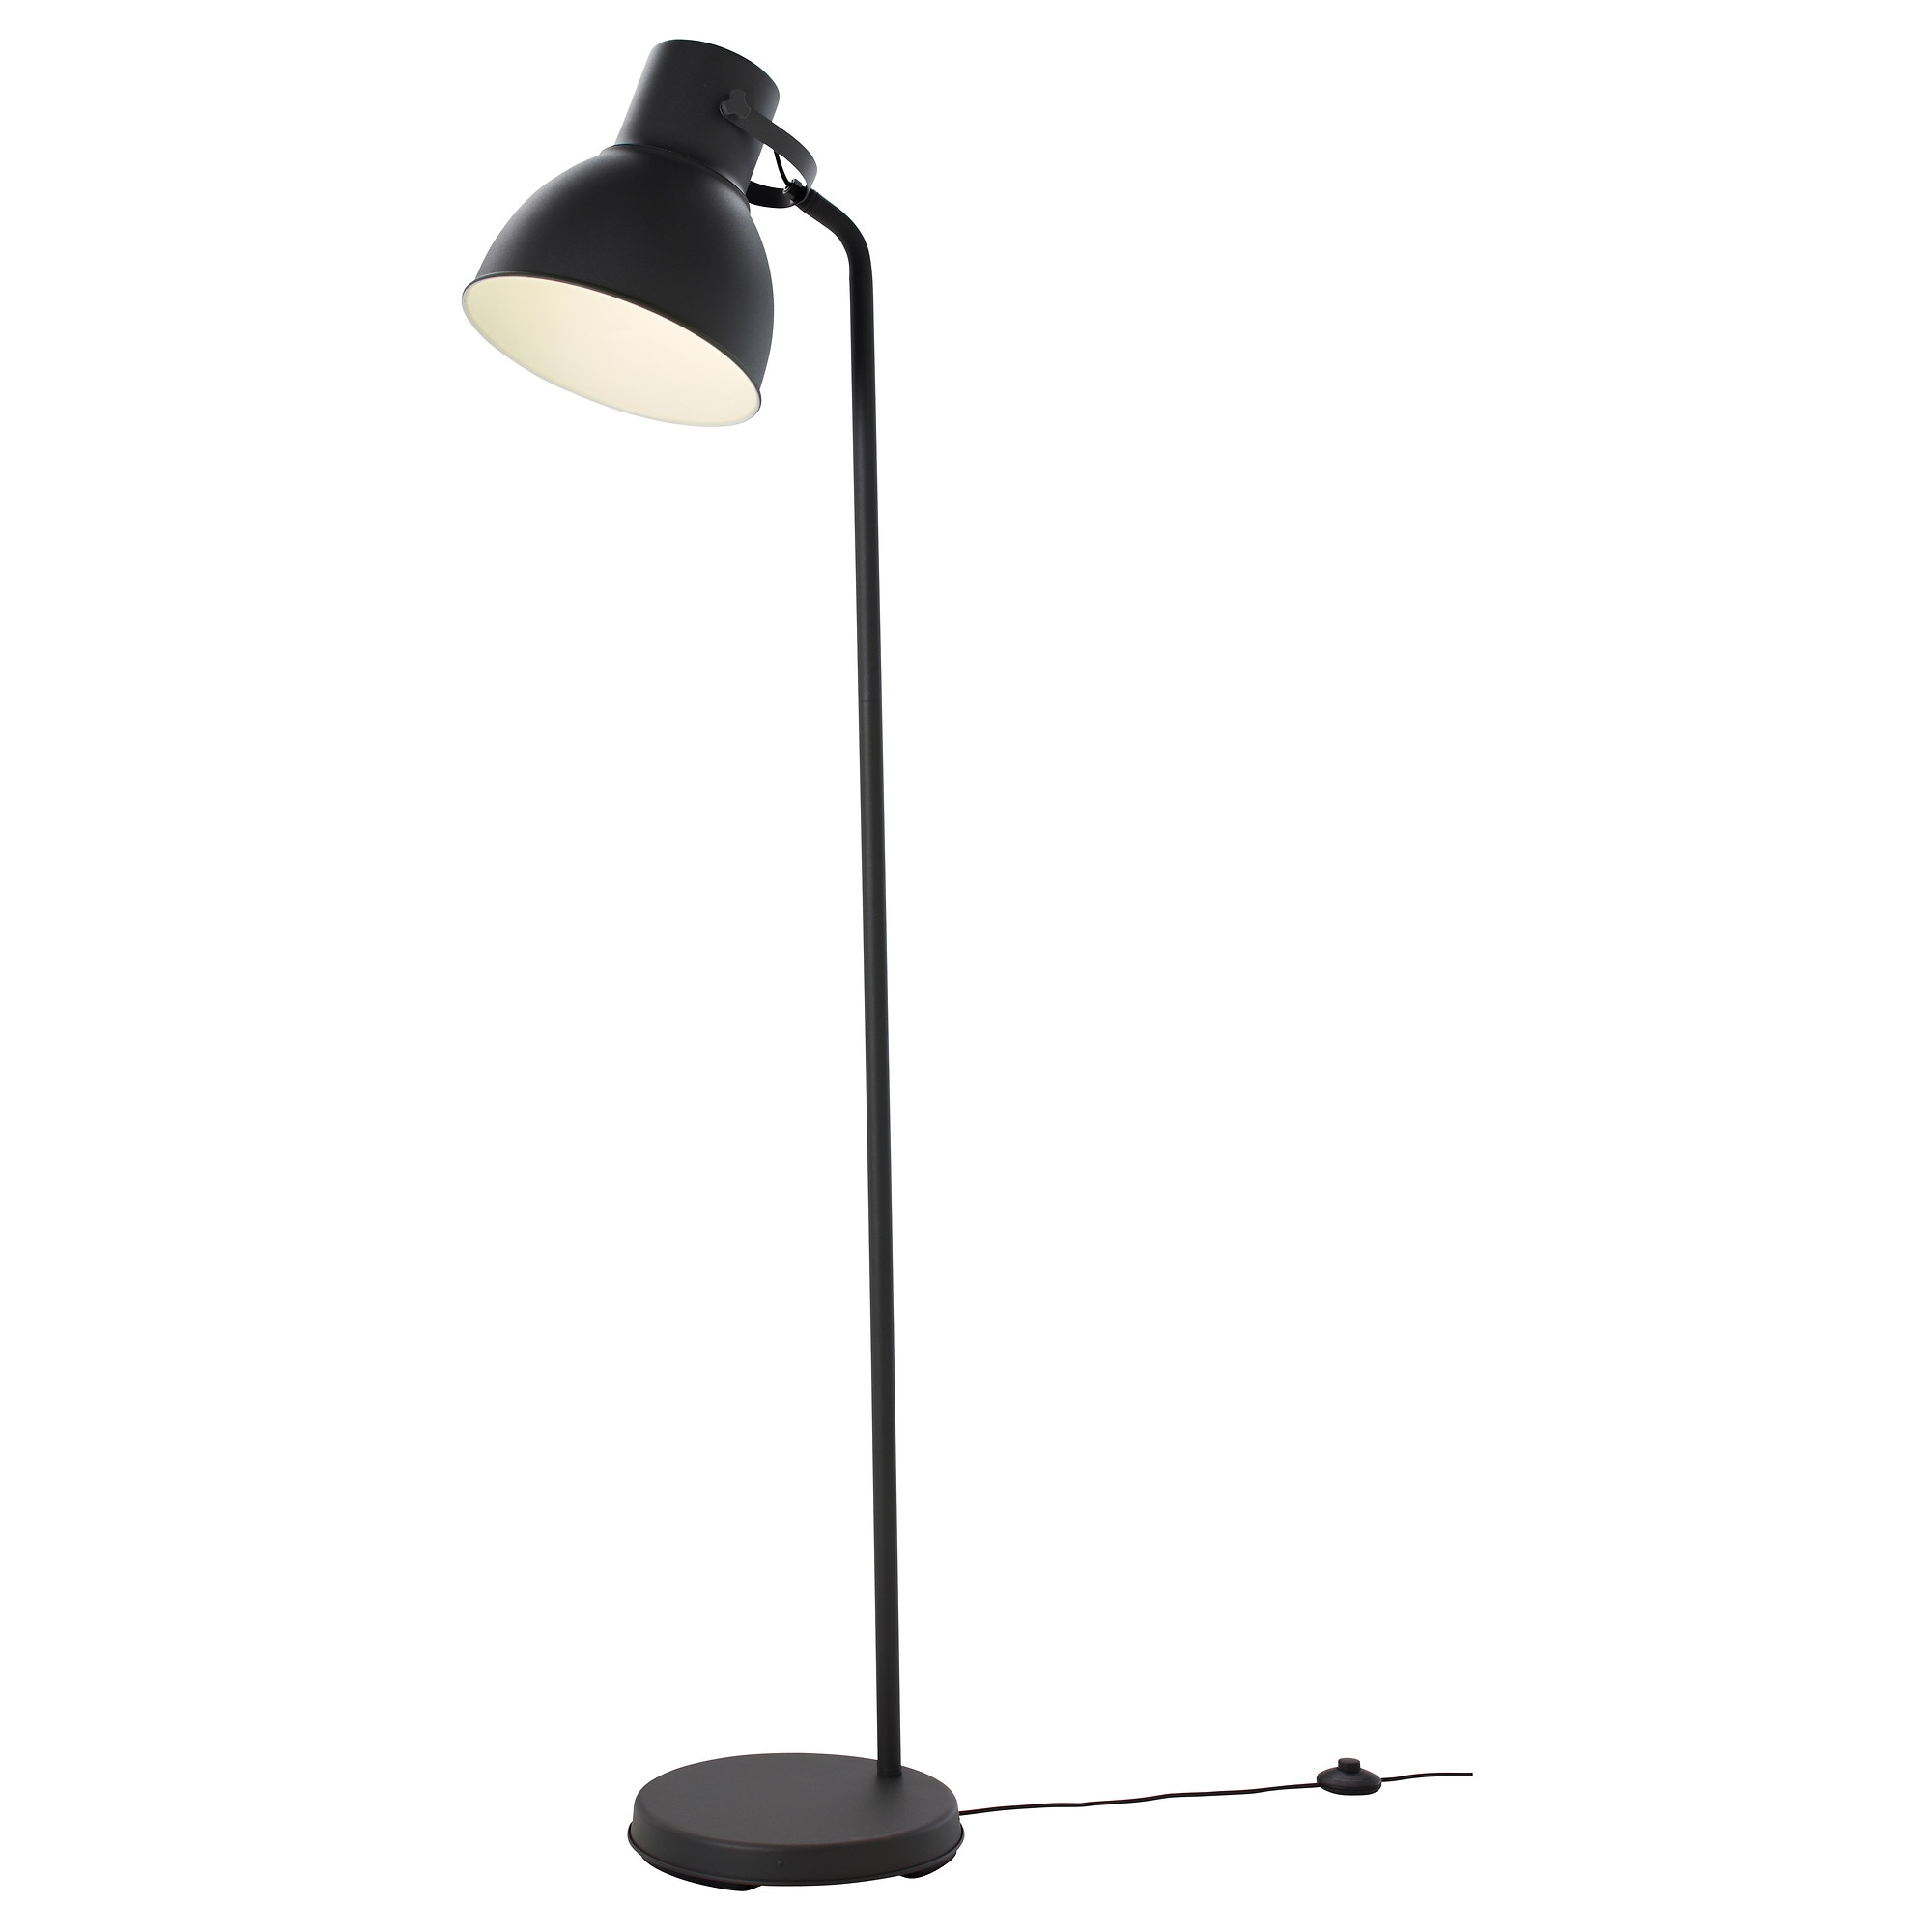 HEKTAR floor lamp with LED bulb, dark gray Max.: 53 W Height: